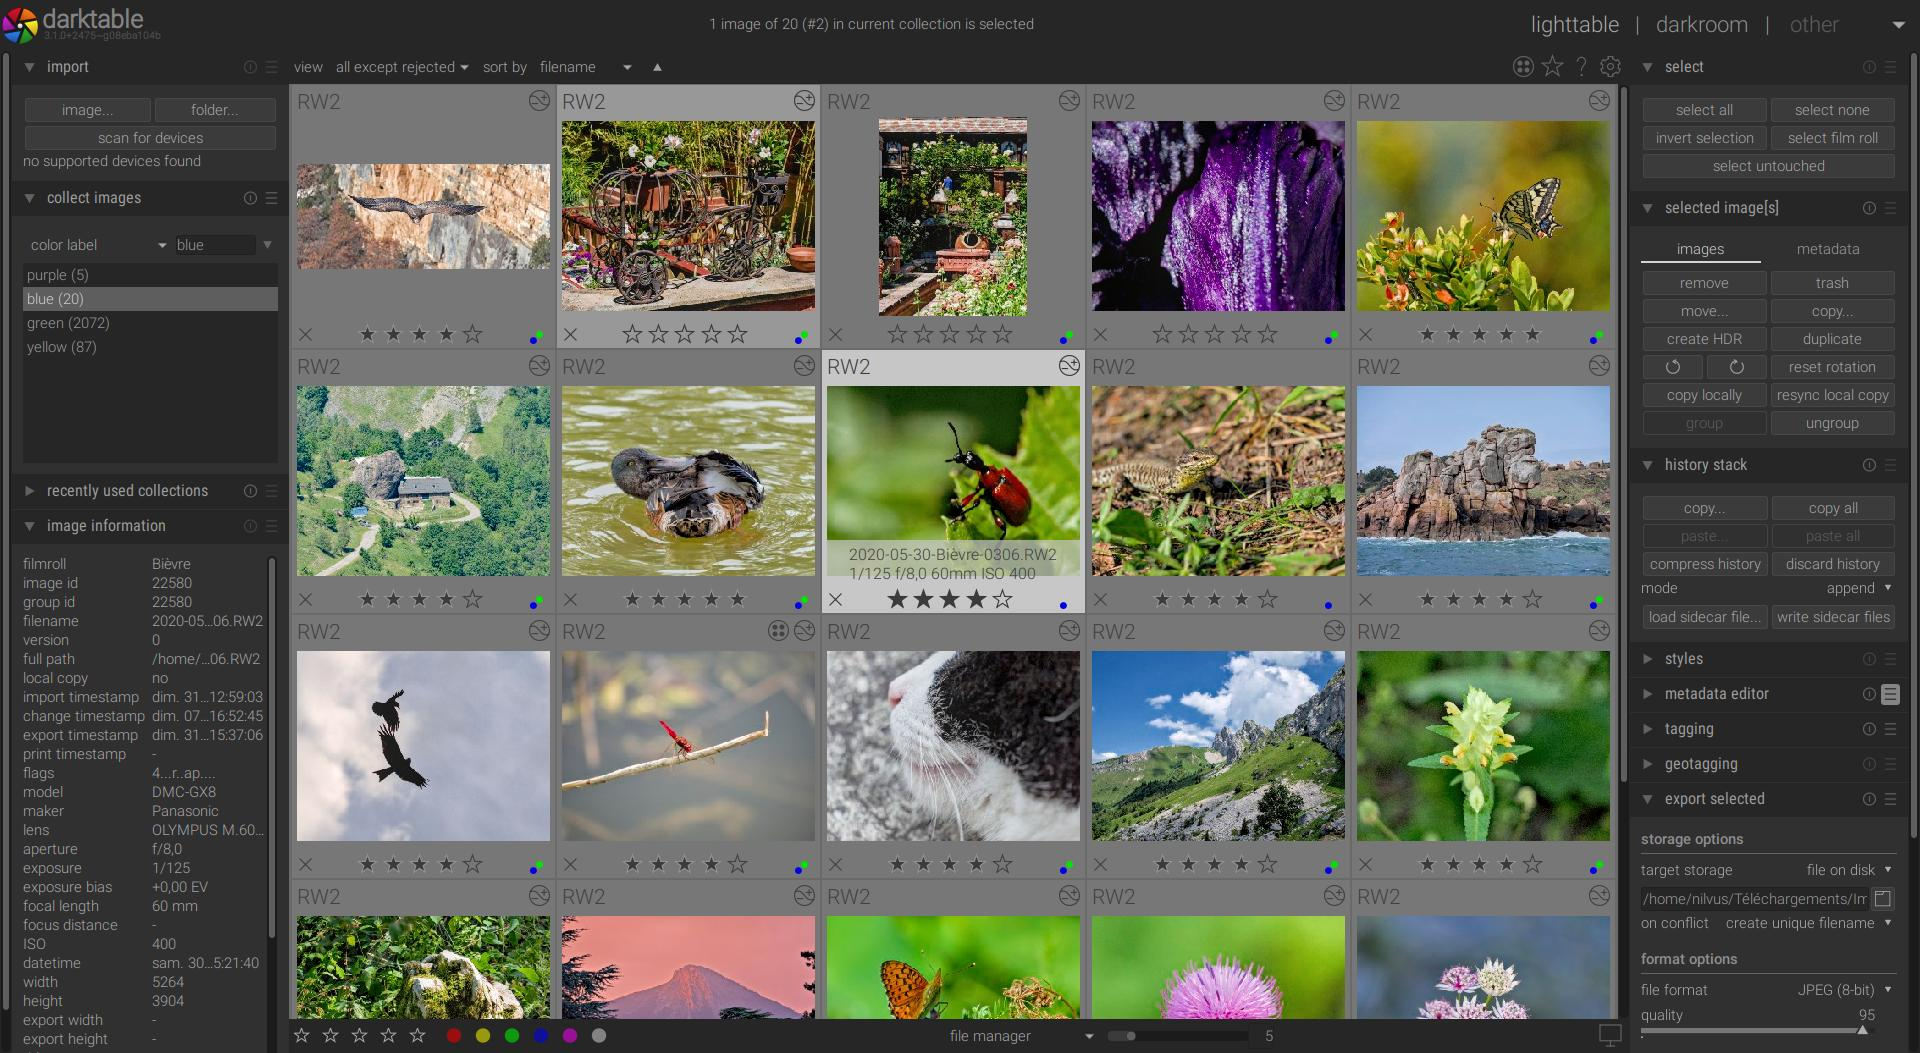 Darktable is an open source photography workflow application and raw developer. A virtual lighttable and darkroom for photographers. It manages your digital negatives in a database, lets you view them through a zoomable lighttable and enables you to develop raw images and enhance them.